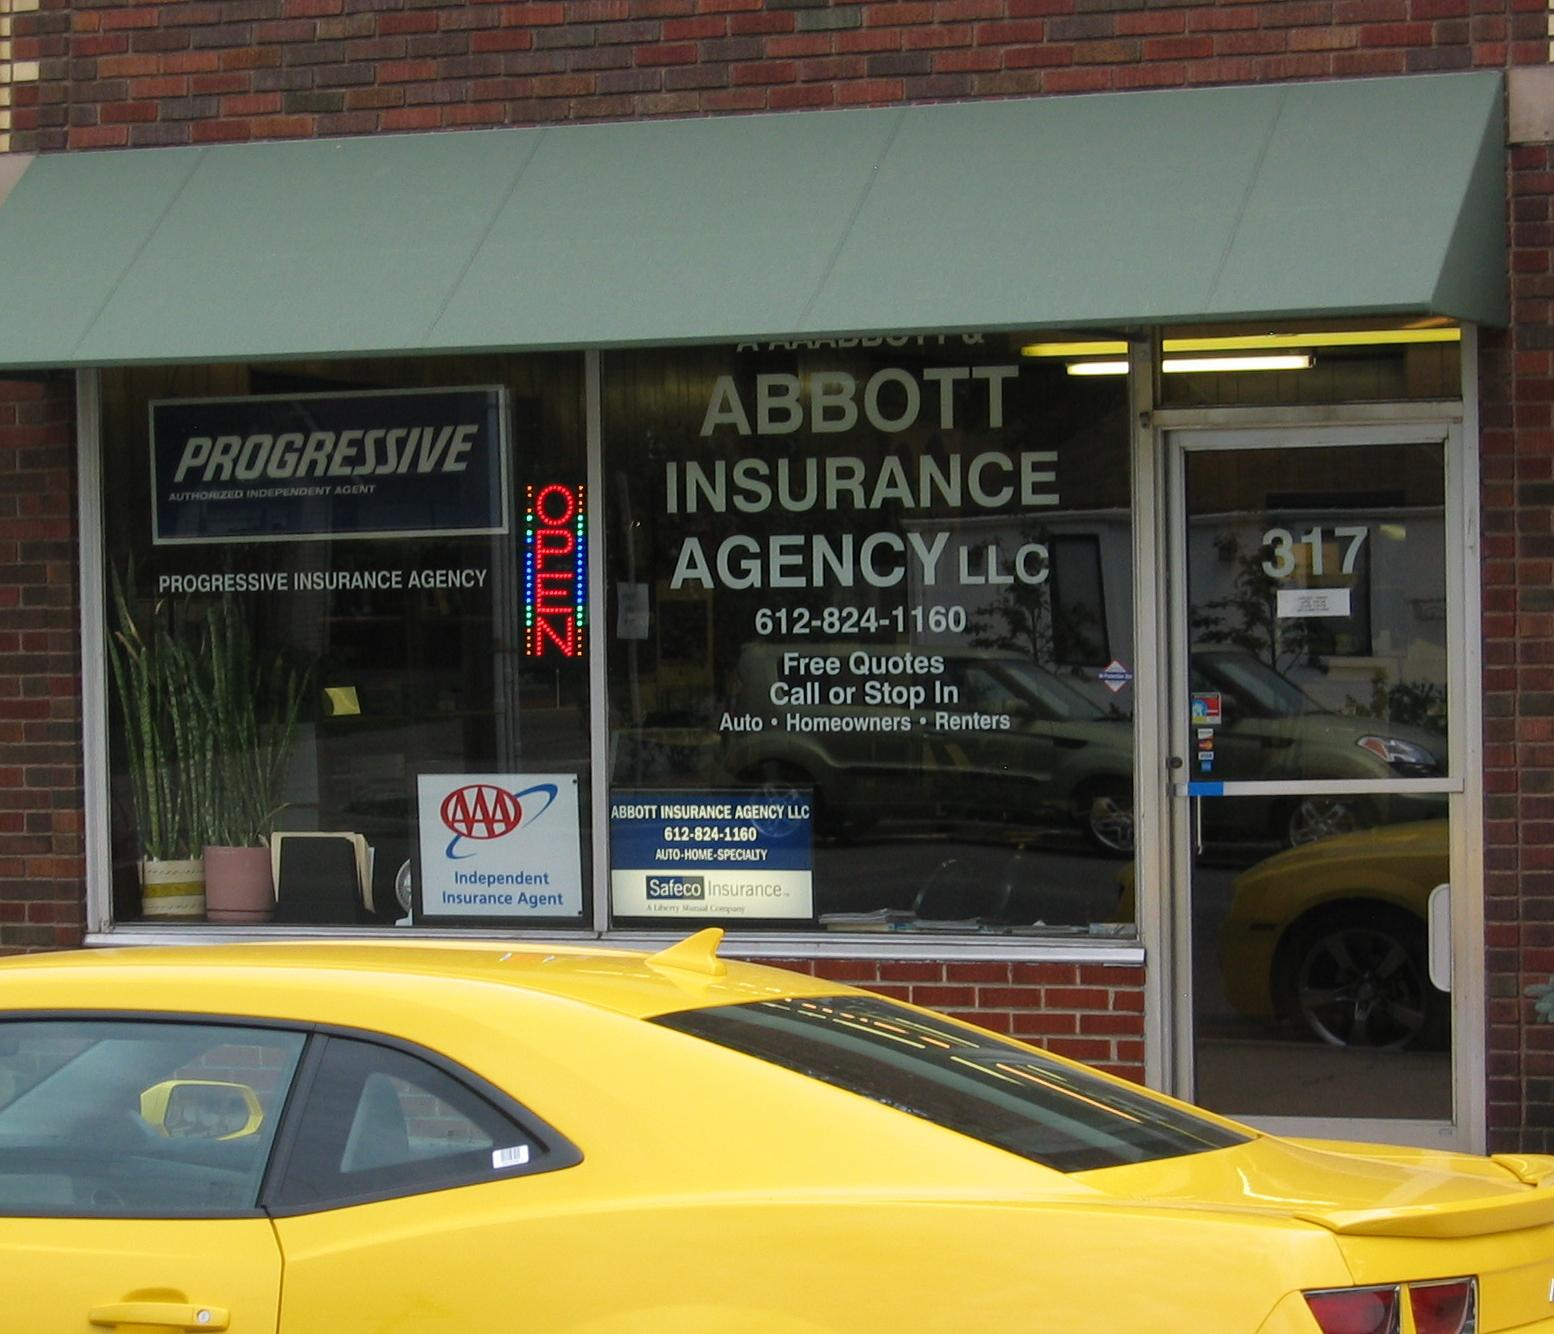 Abbott Insurance Agency LLC image 0